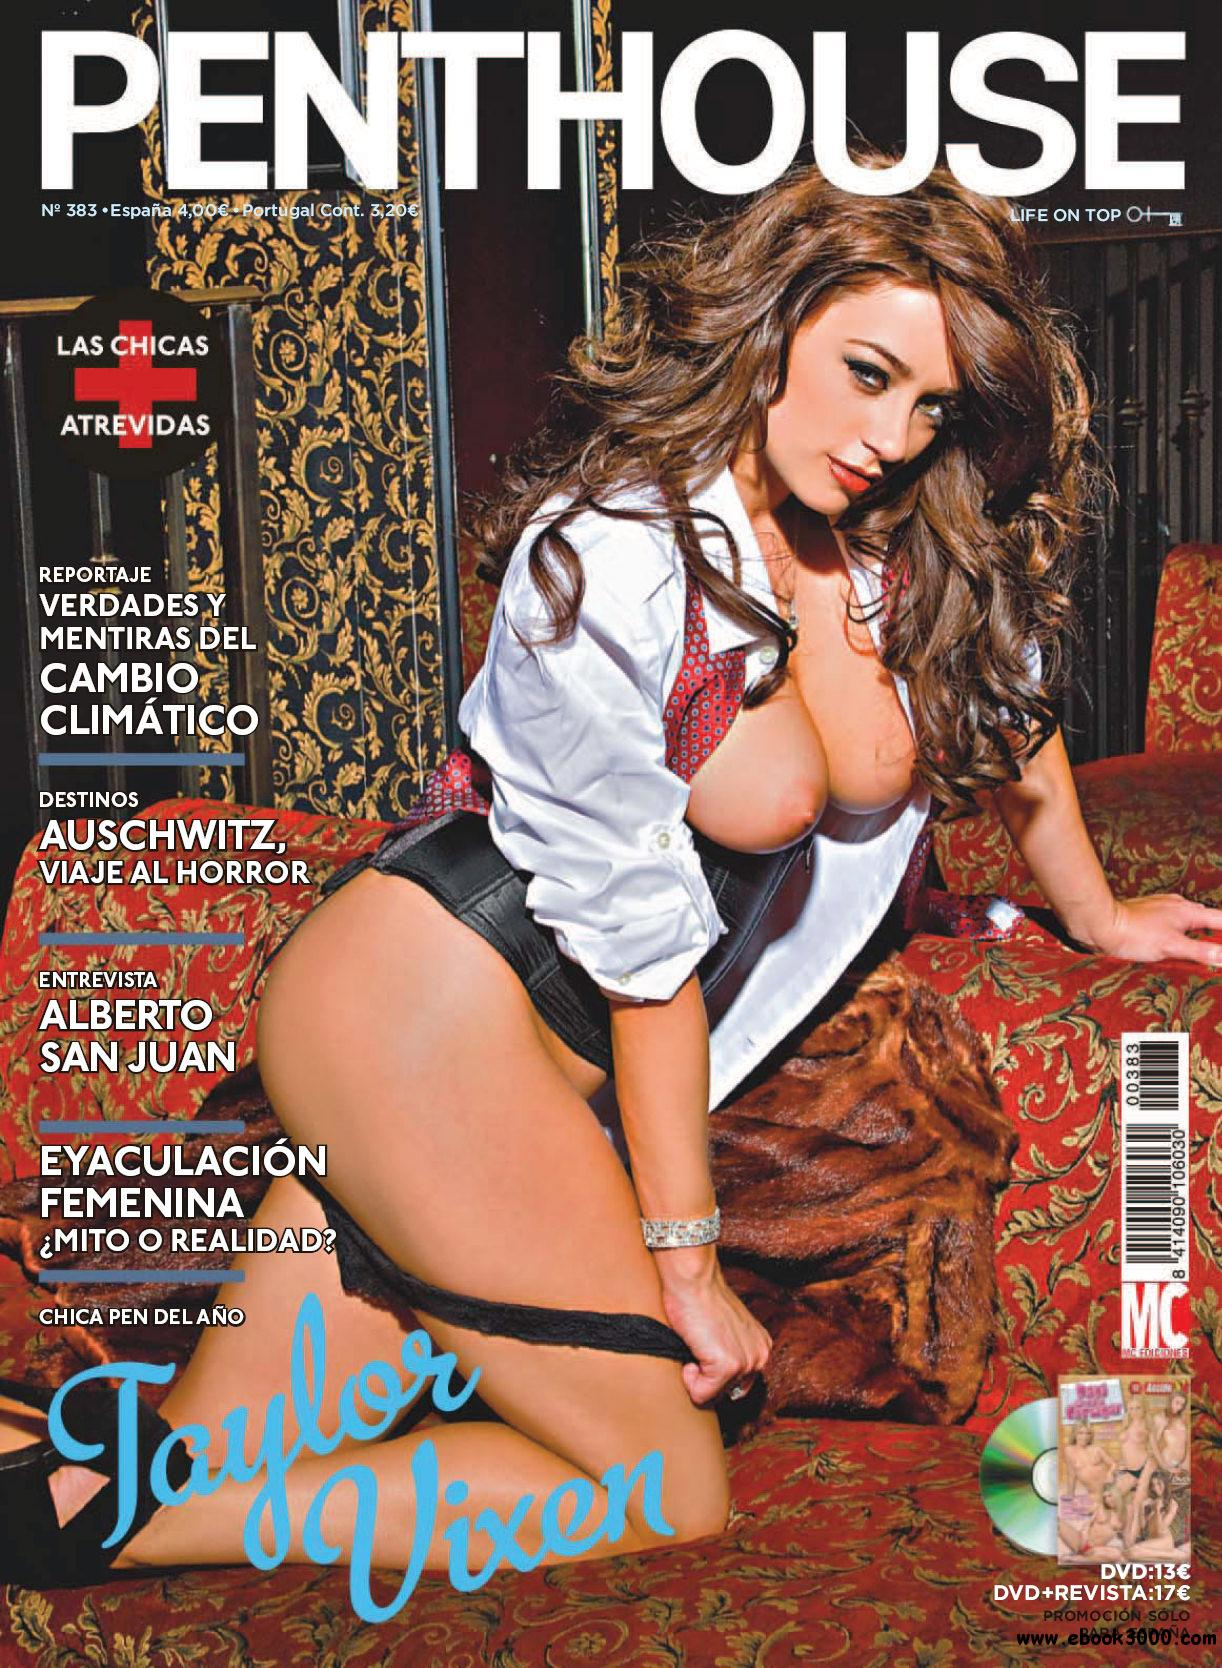 Penthouse Spain - February 2010 free download